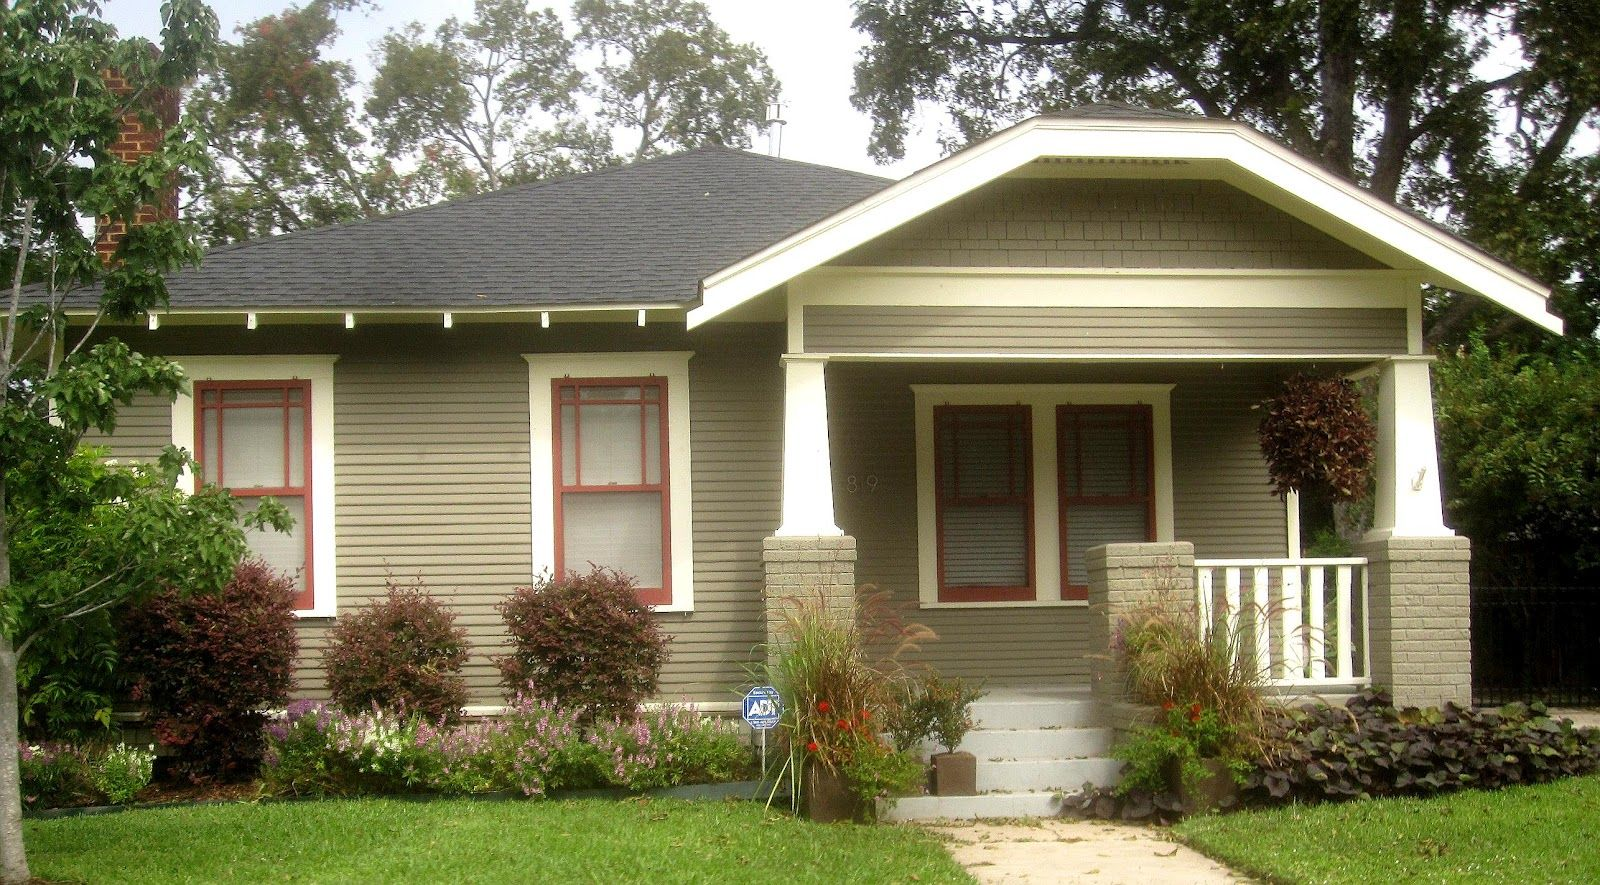 this year s 2012 bungalow home tour features 6 notable norhill